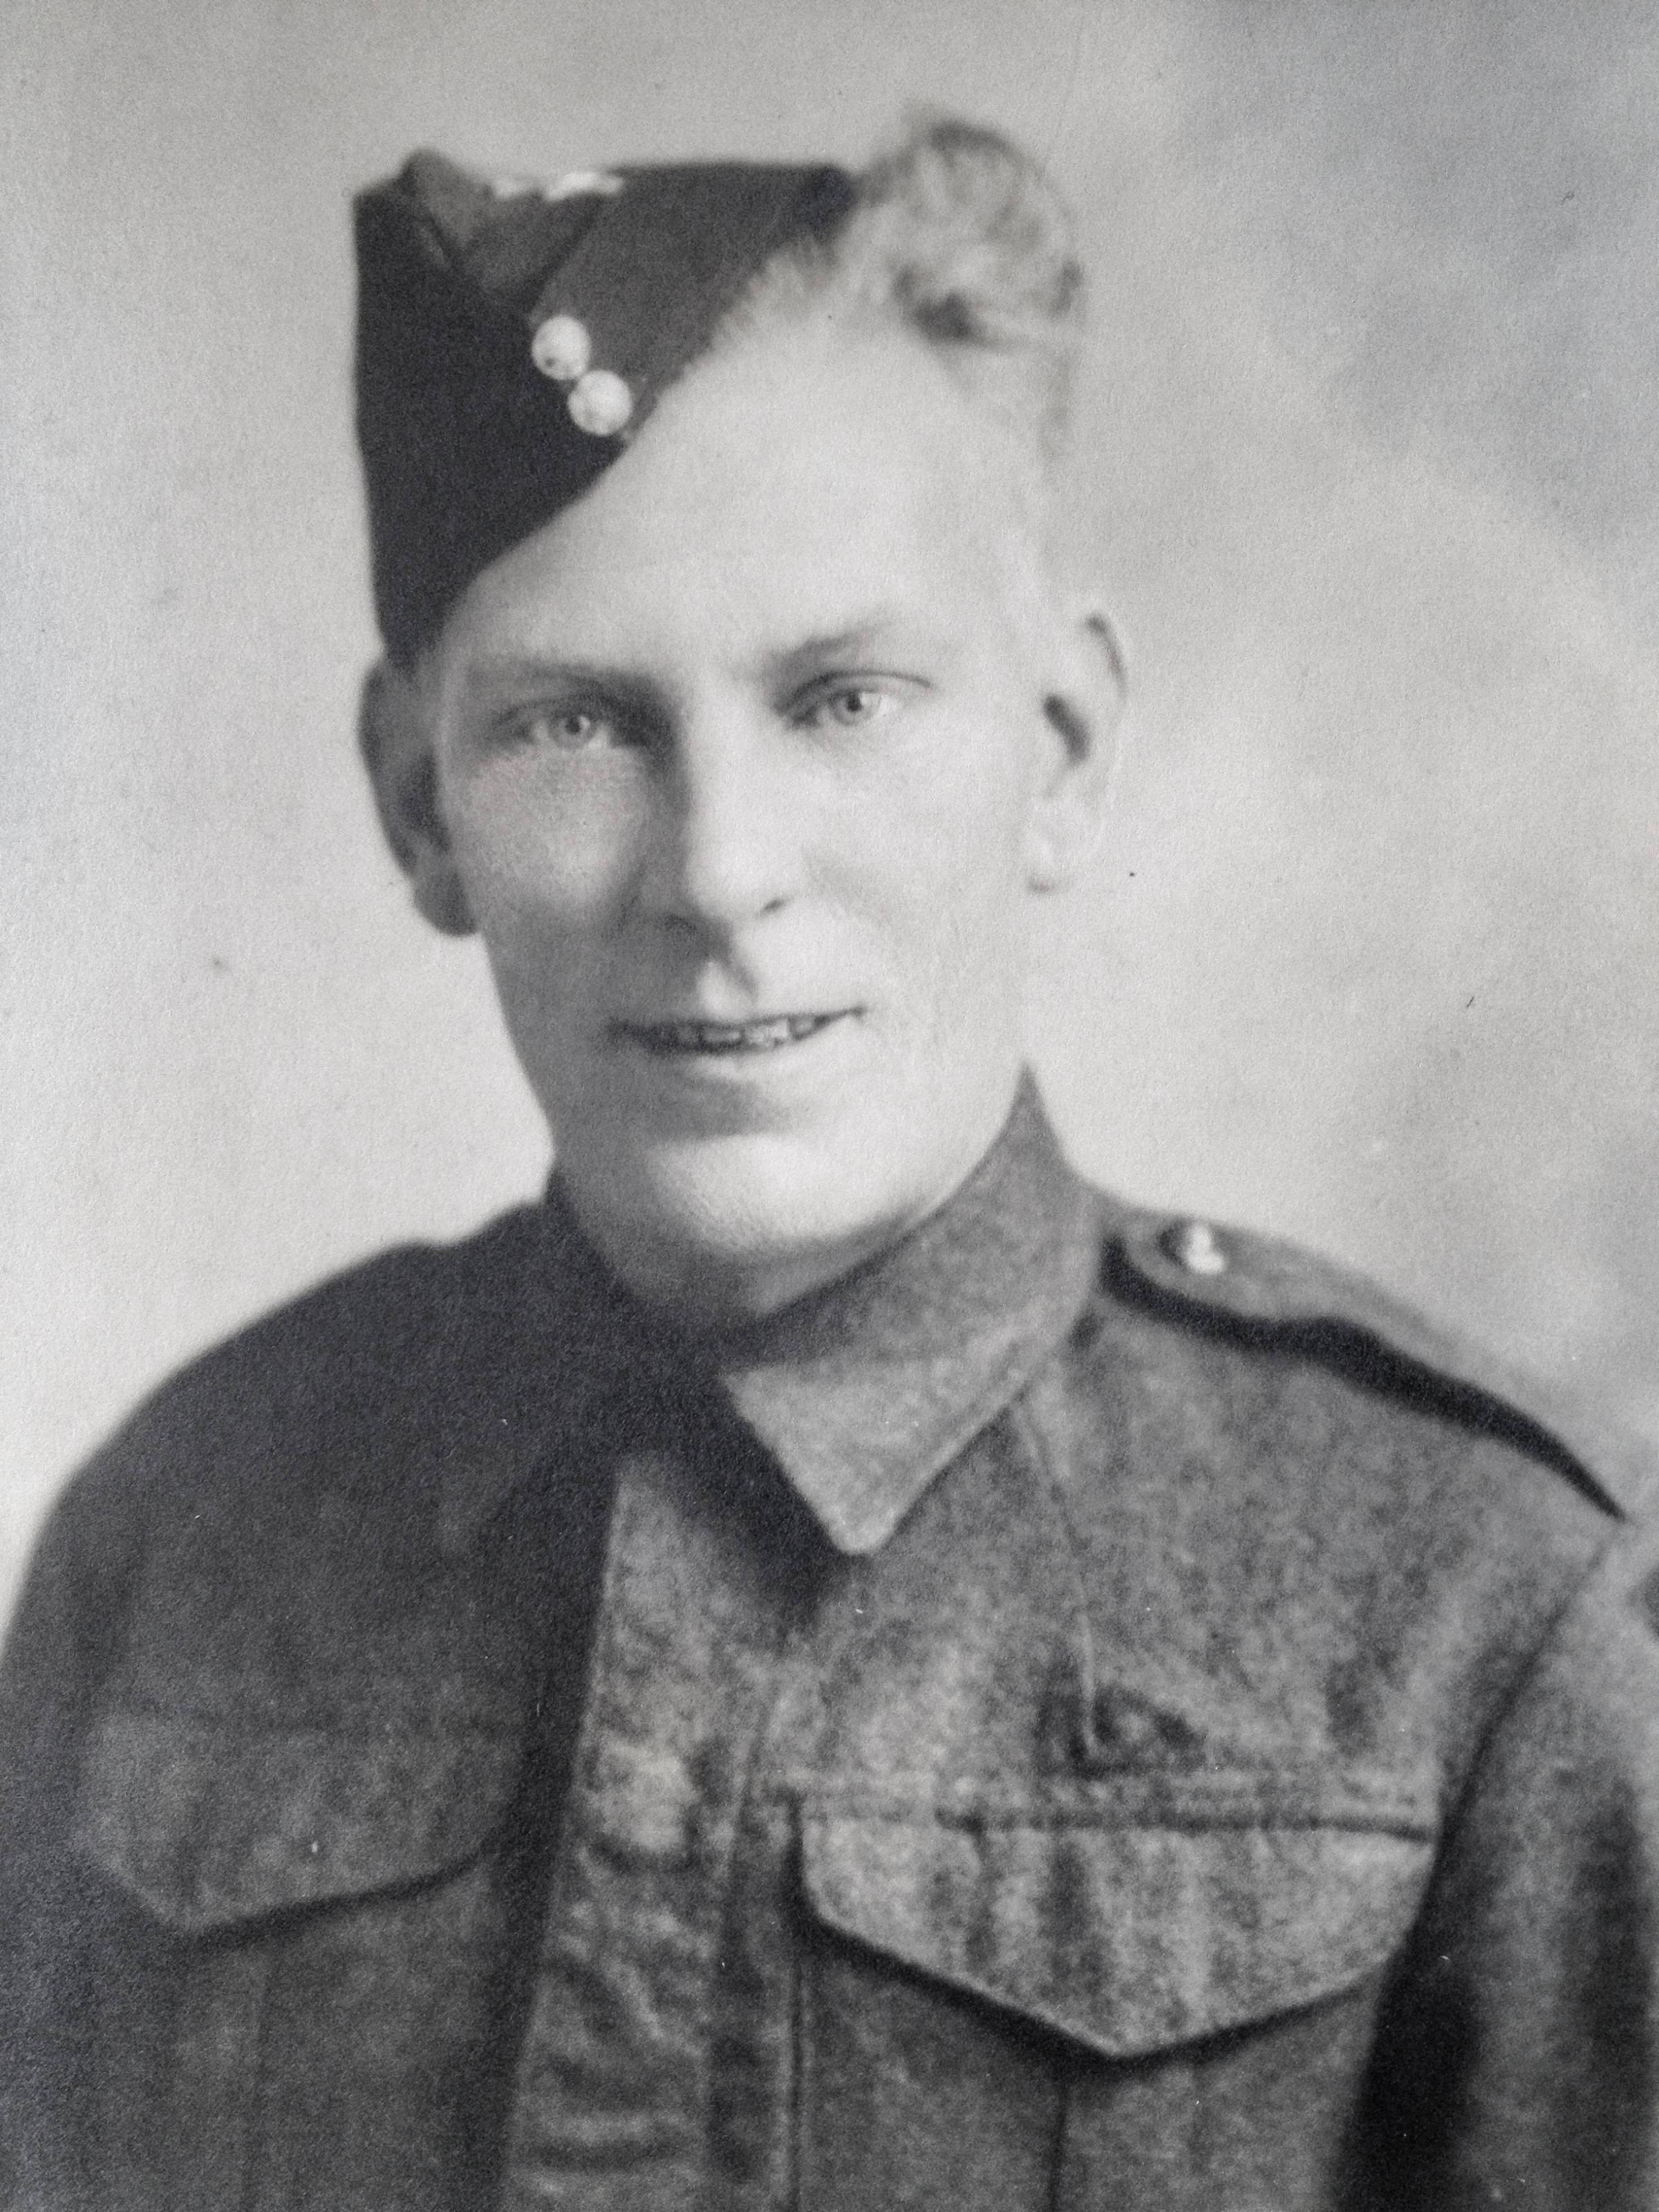 Tragic: William 'Ben' Butler was killed during the D-Day invasion